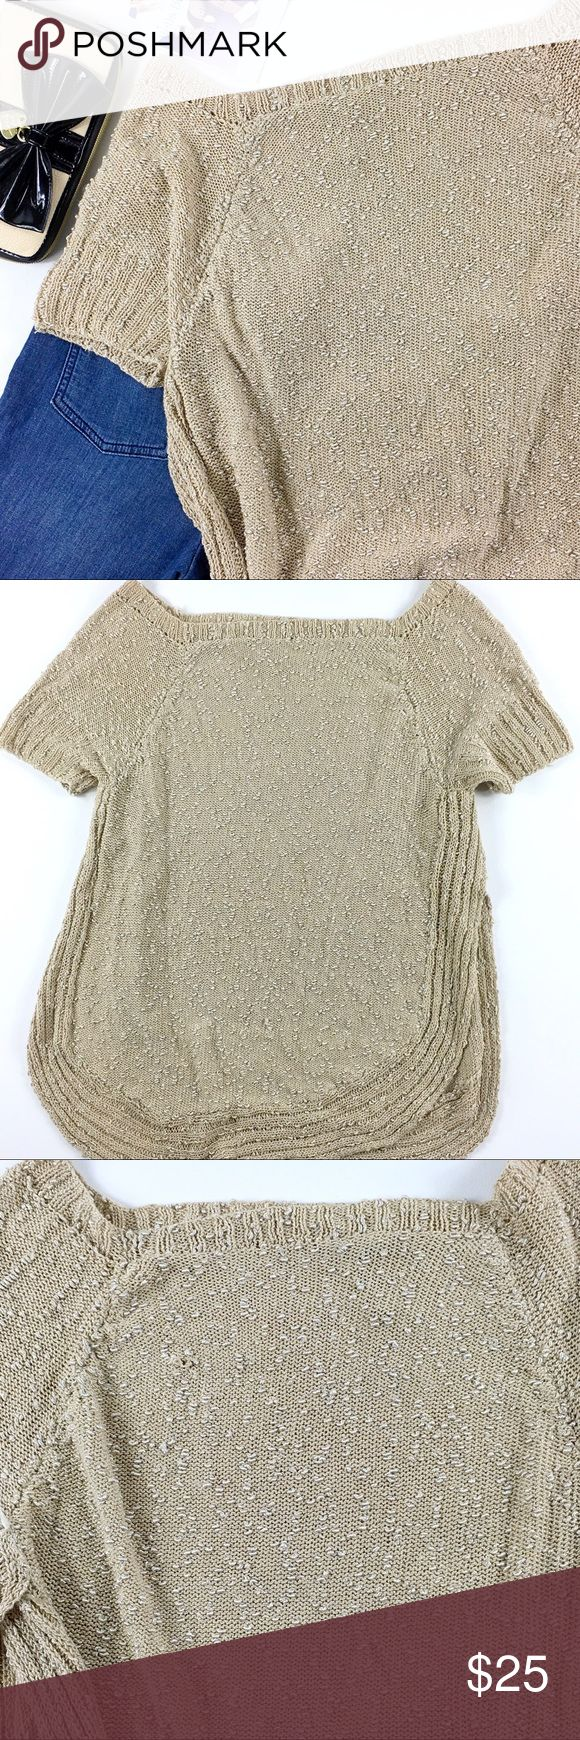 Eugenia Gayoso Gold Textured Boatneck Knit Top Eugenia Gayoso Gold Textured square boatneck sweater with split hem. Size large but missing tag. Pre loved in beautiful condition with minor knit flaw on back which is shown in photo and reflected in price. Please see all photos. eugenia gayoso Sweaters